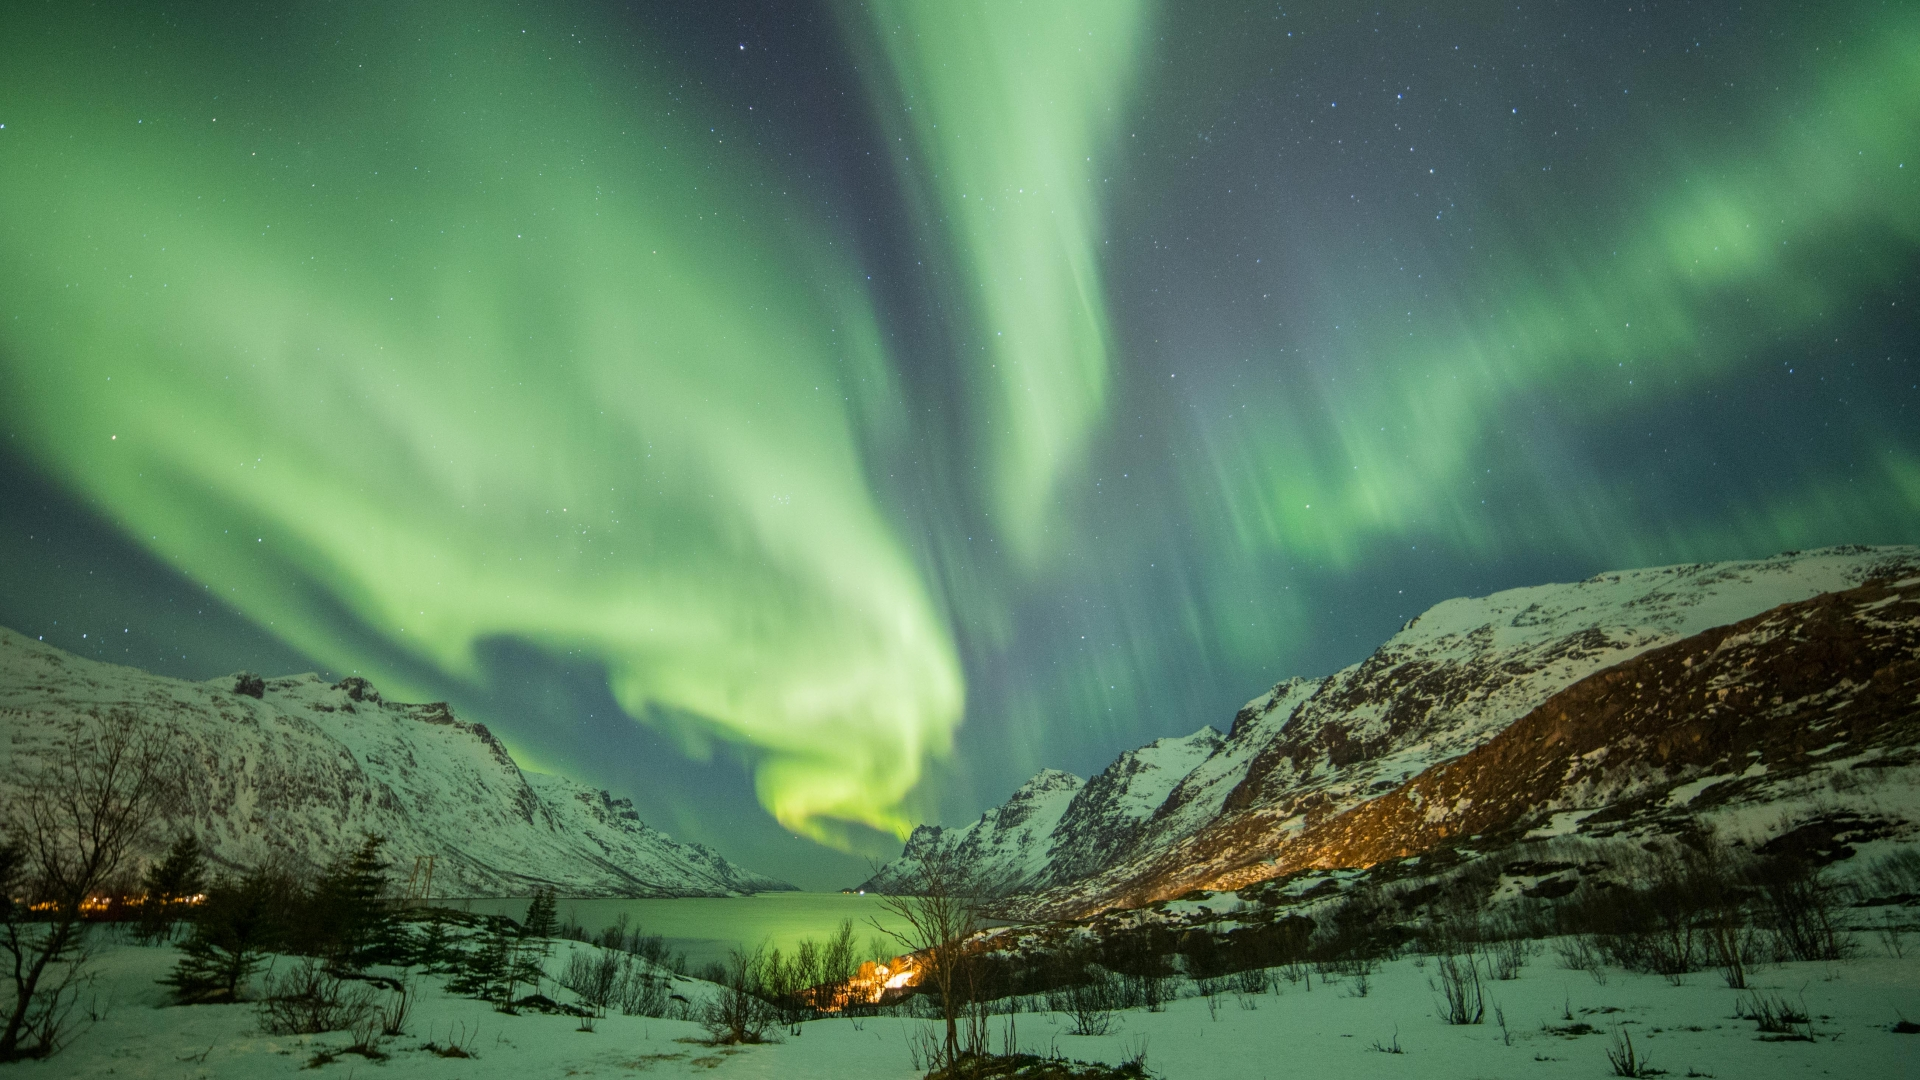 Snowy mountains and Northern Lights